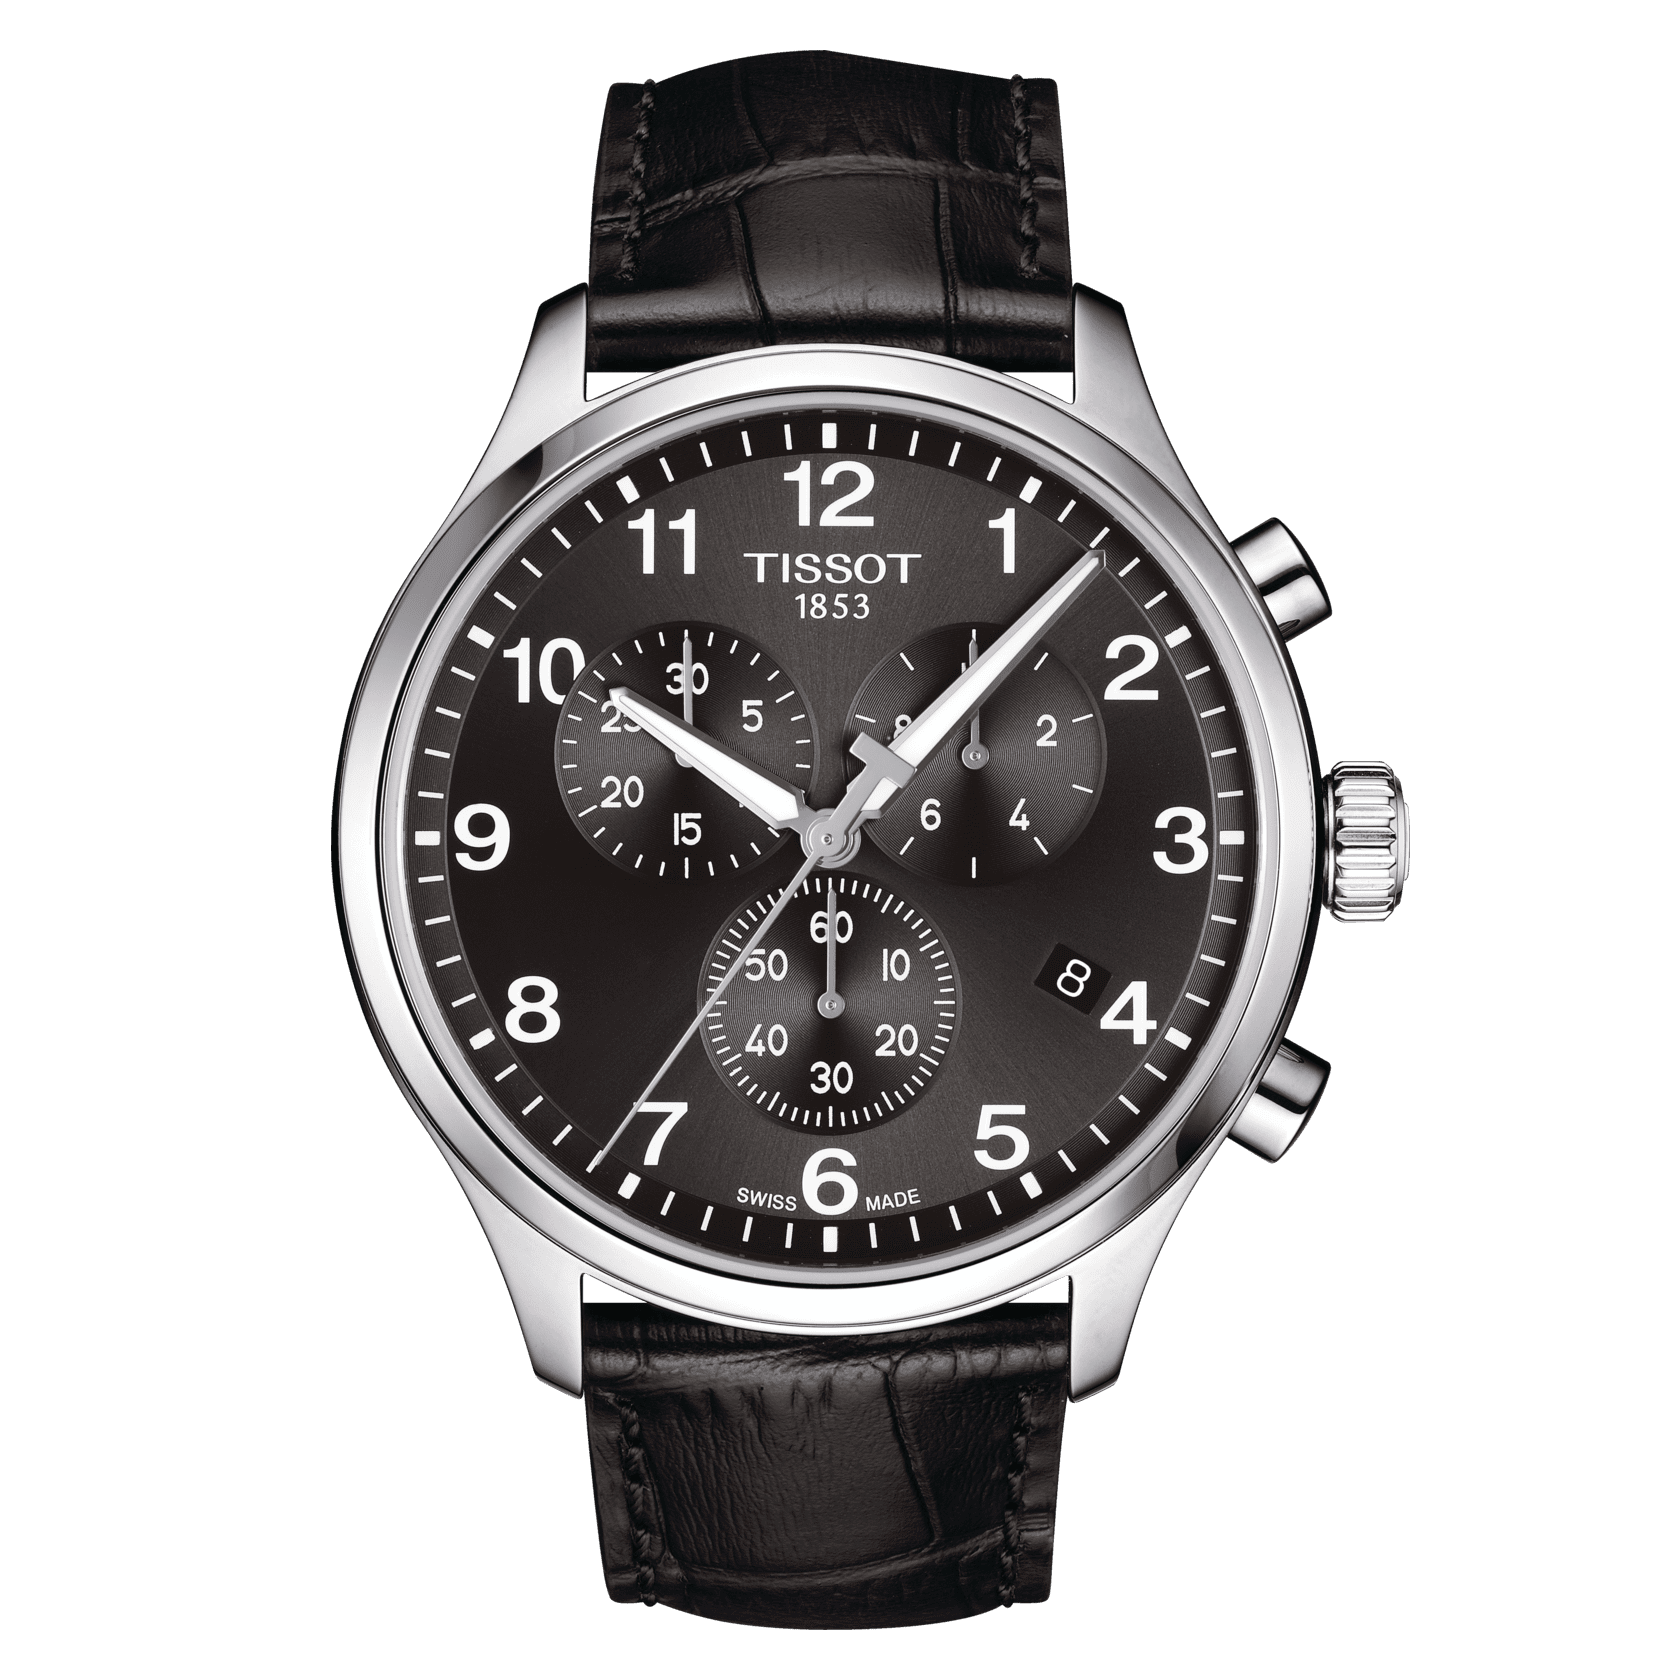 Best Place To Buy A Replica Watch Online